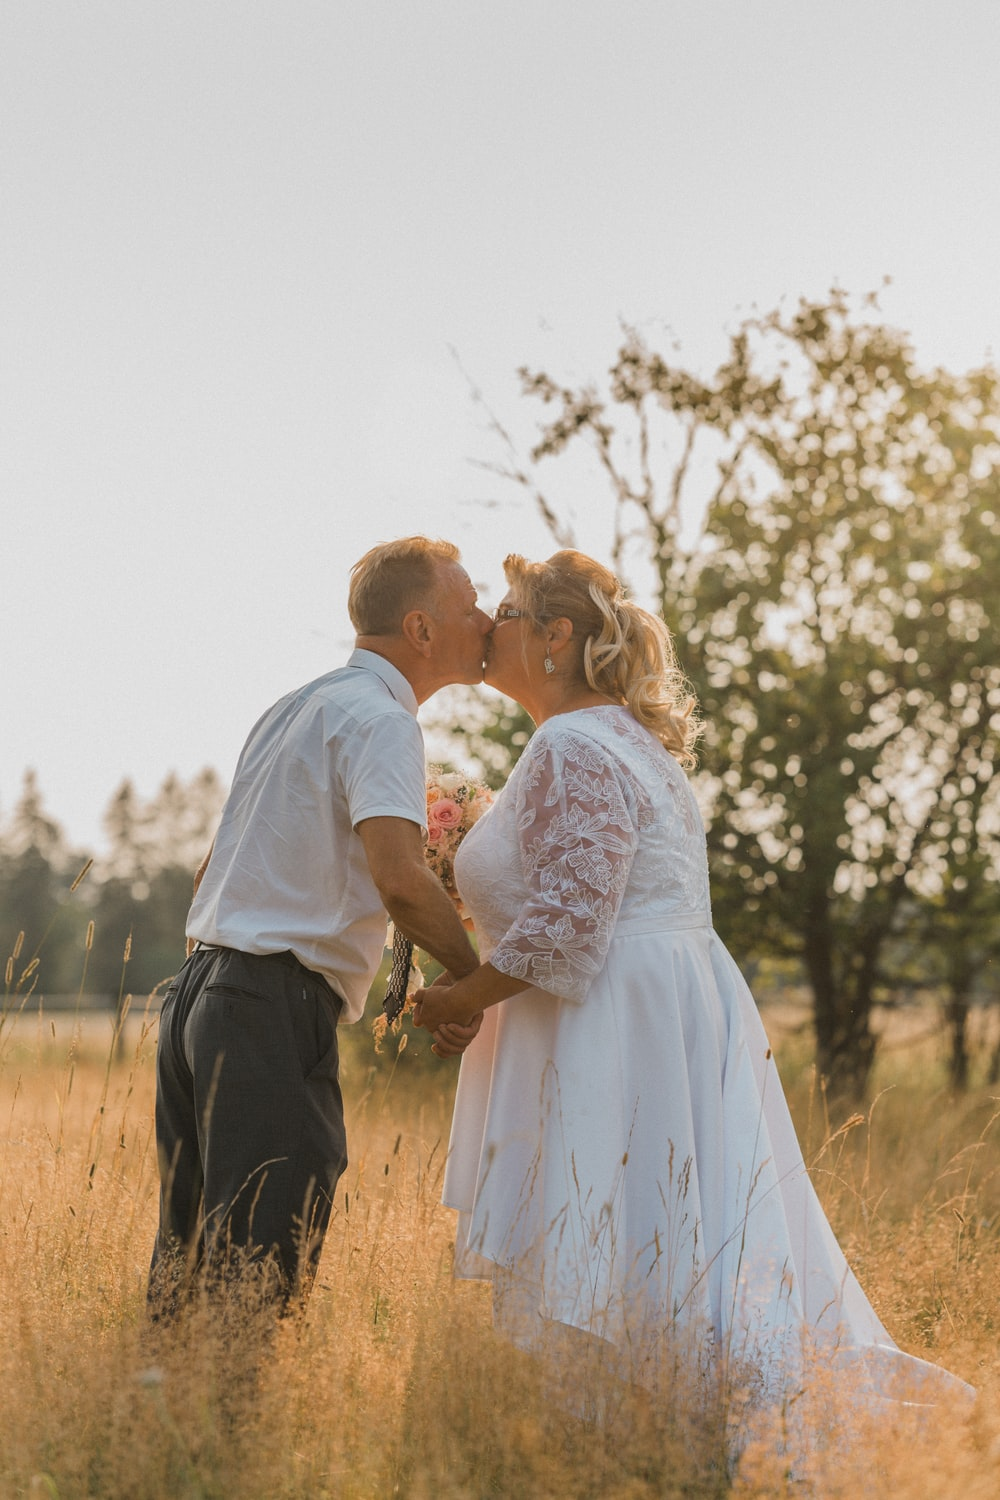 man in white dress shirt and woman in white dress